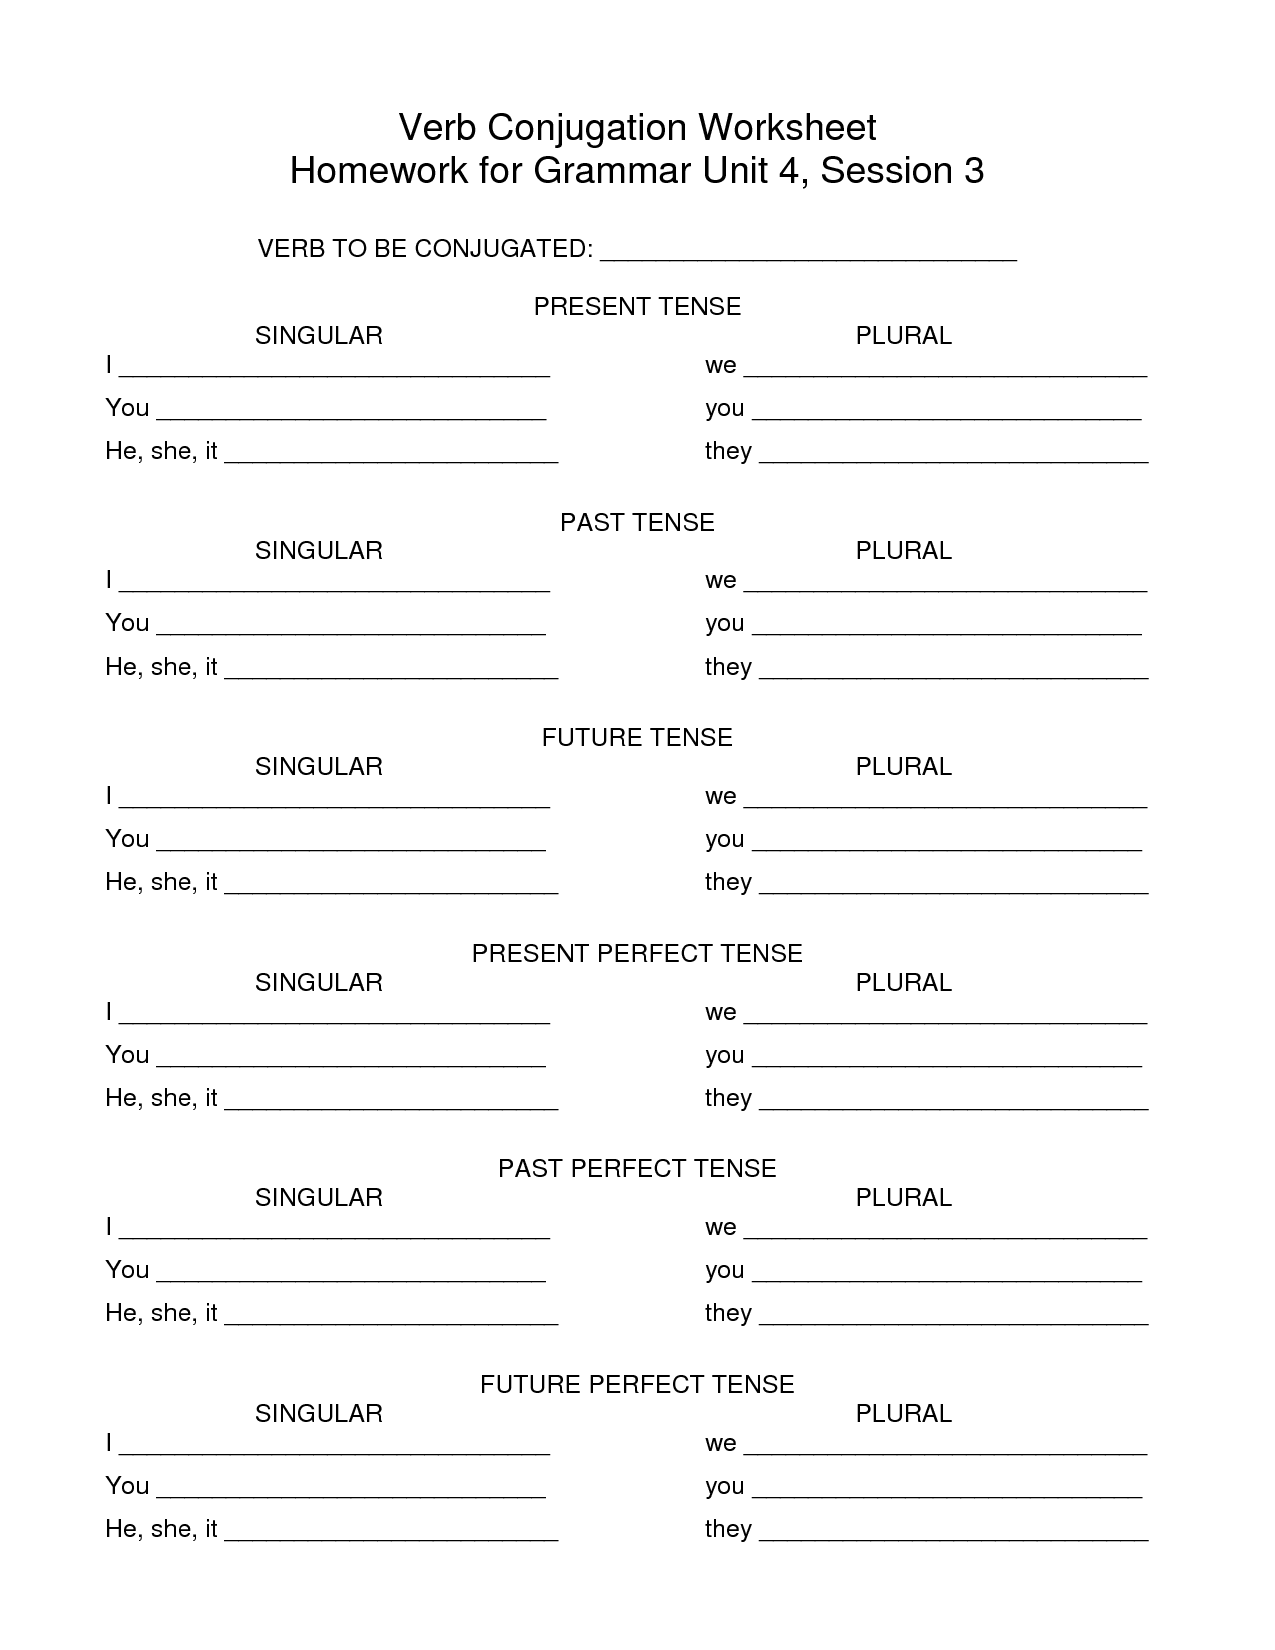 worksheet Spanish Present Progressive Worksheet spanish verb conjugation worksheets blank para la clase 18 best images of reflexive verbs worksheet and refl